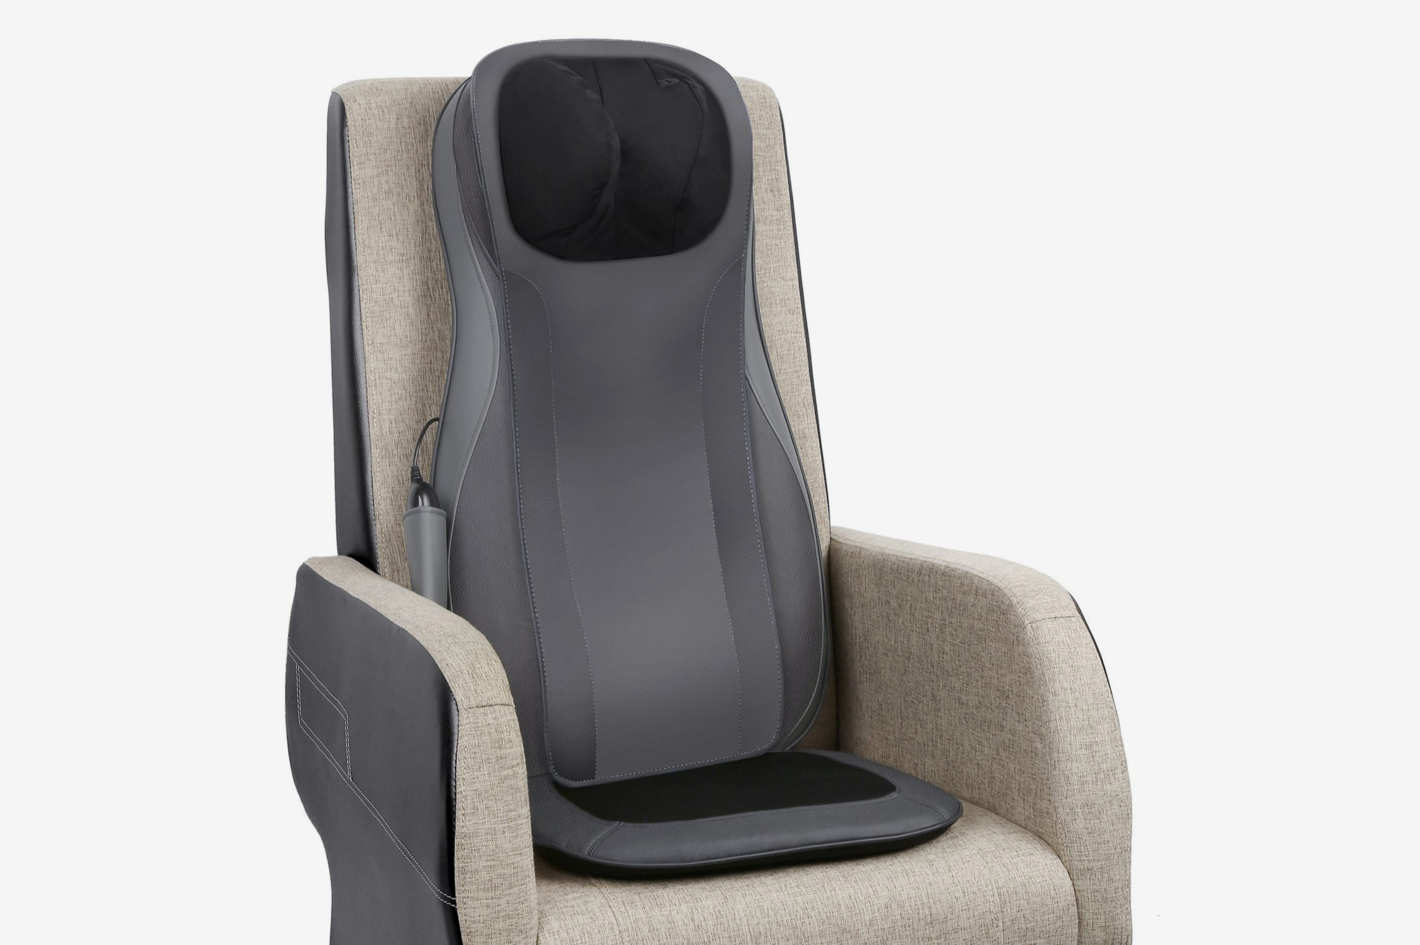 A gray massage cushion attached to a gray chair with brown upholstery.